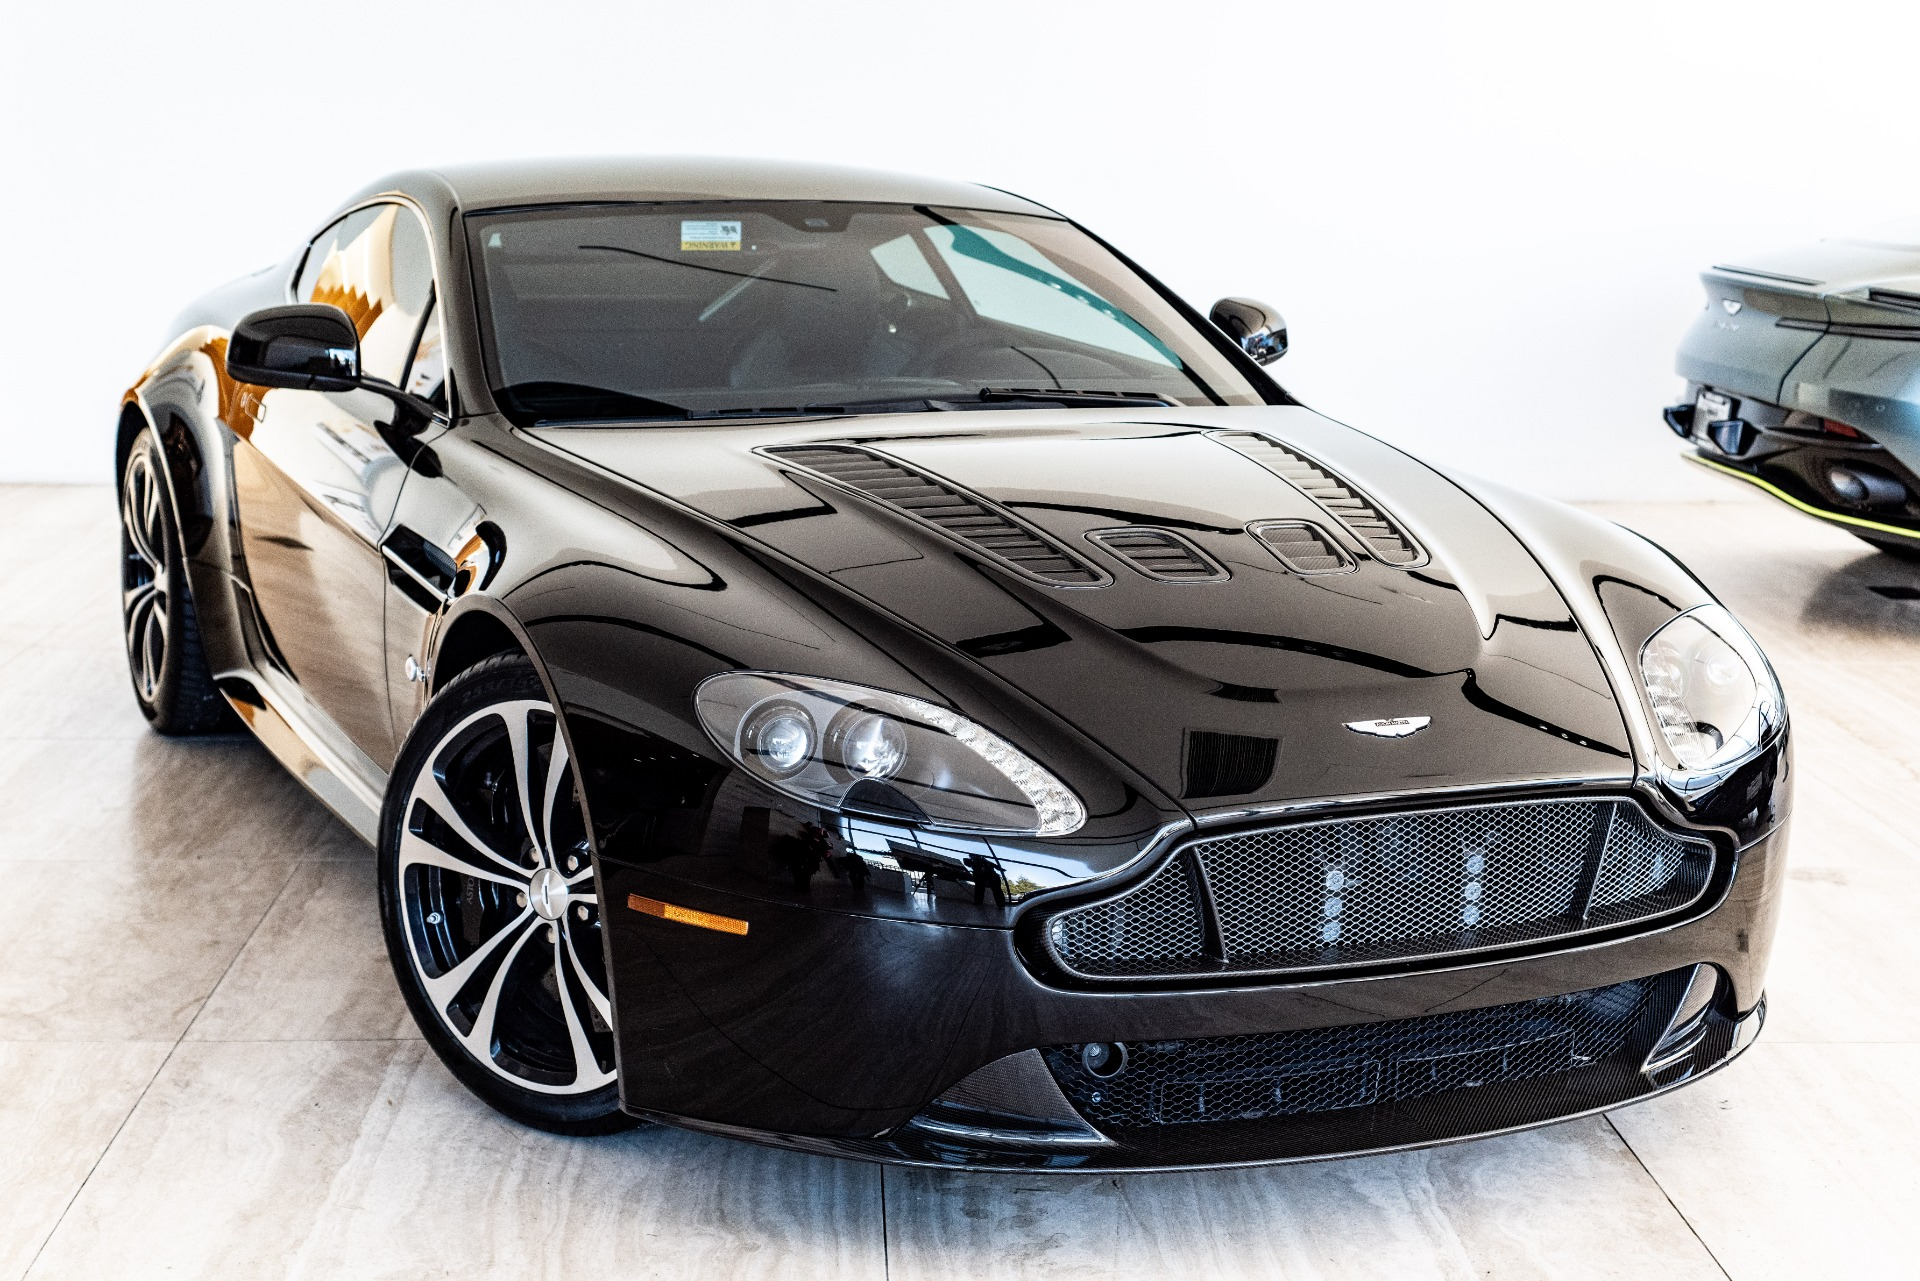 2015 aston martin v12 vantage s stock # ps01899 for sale near vienna